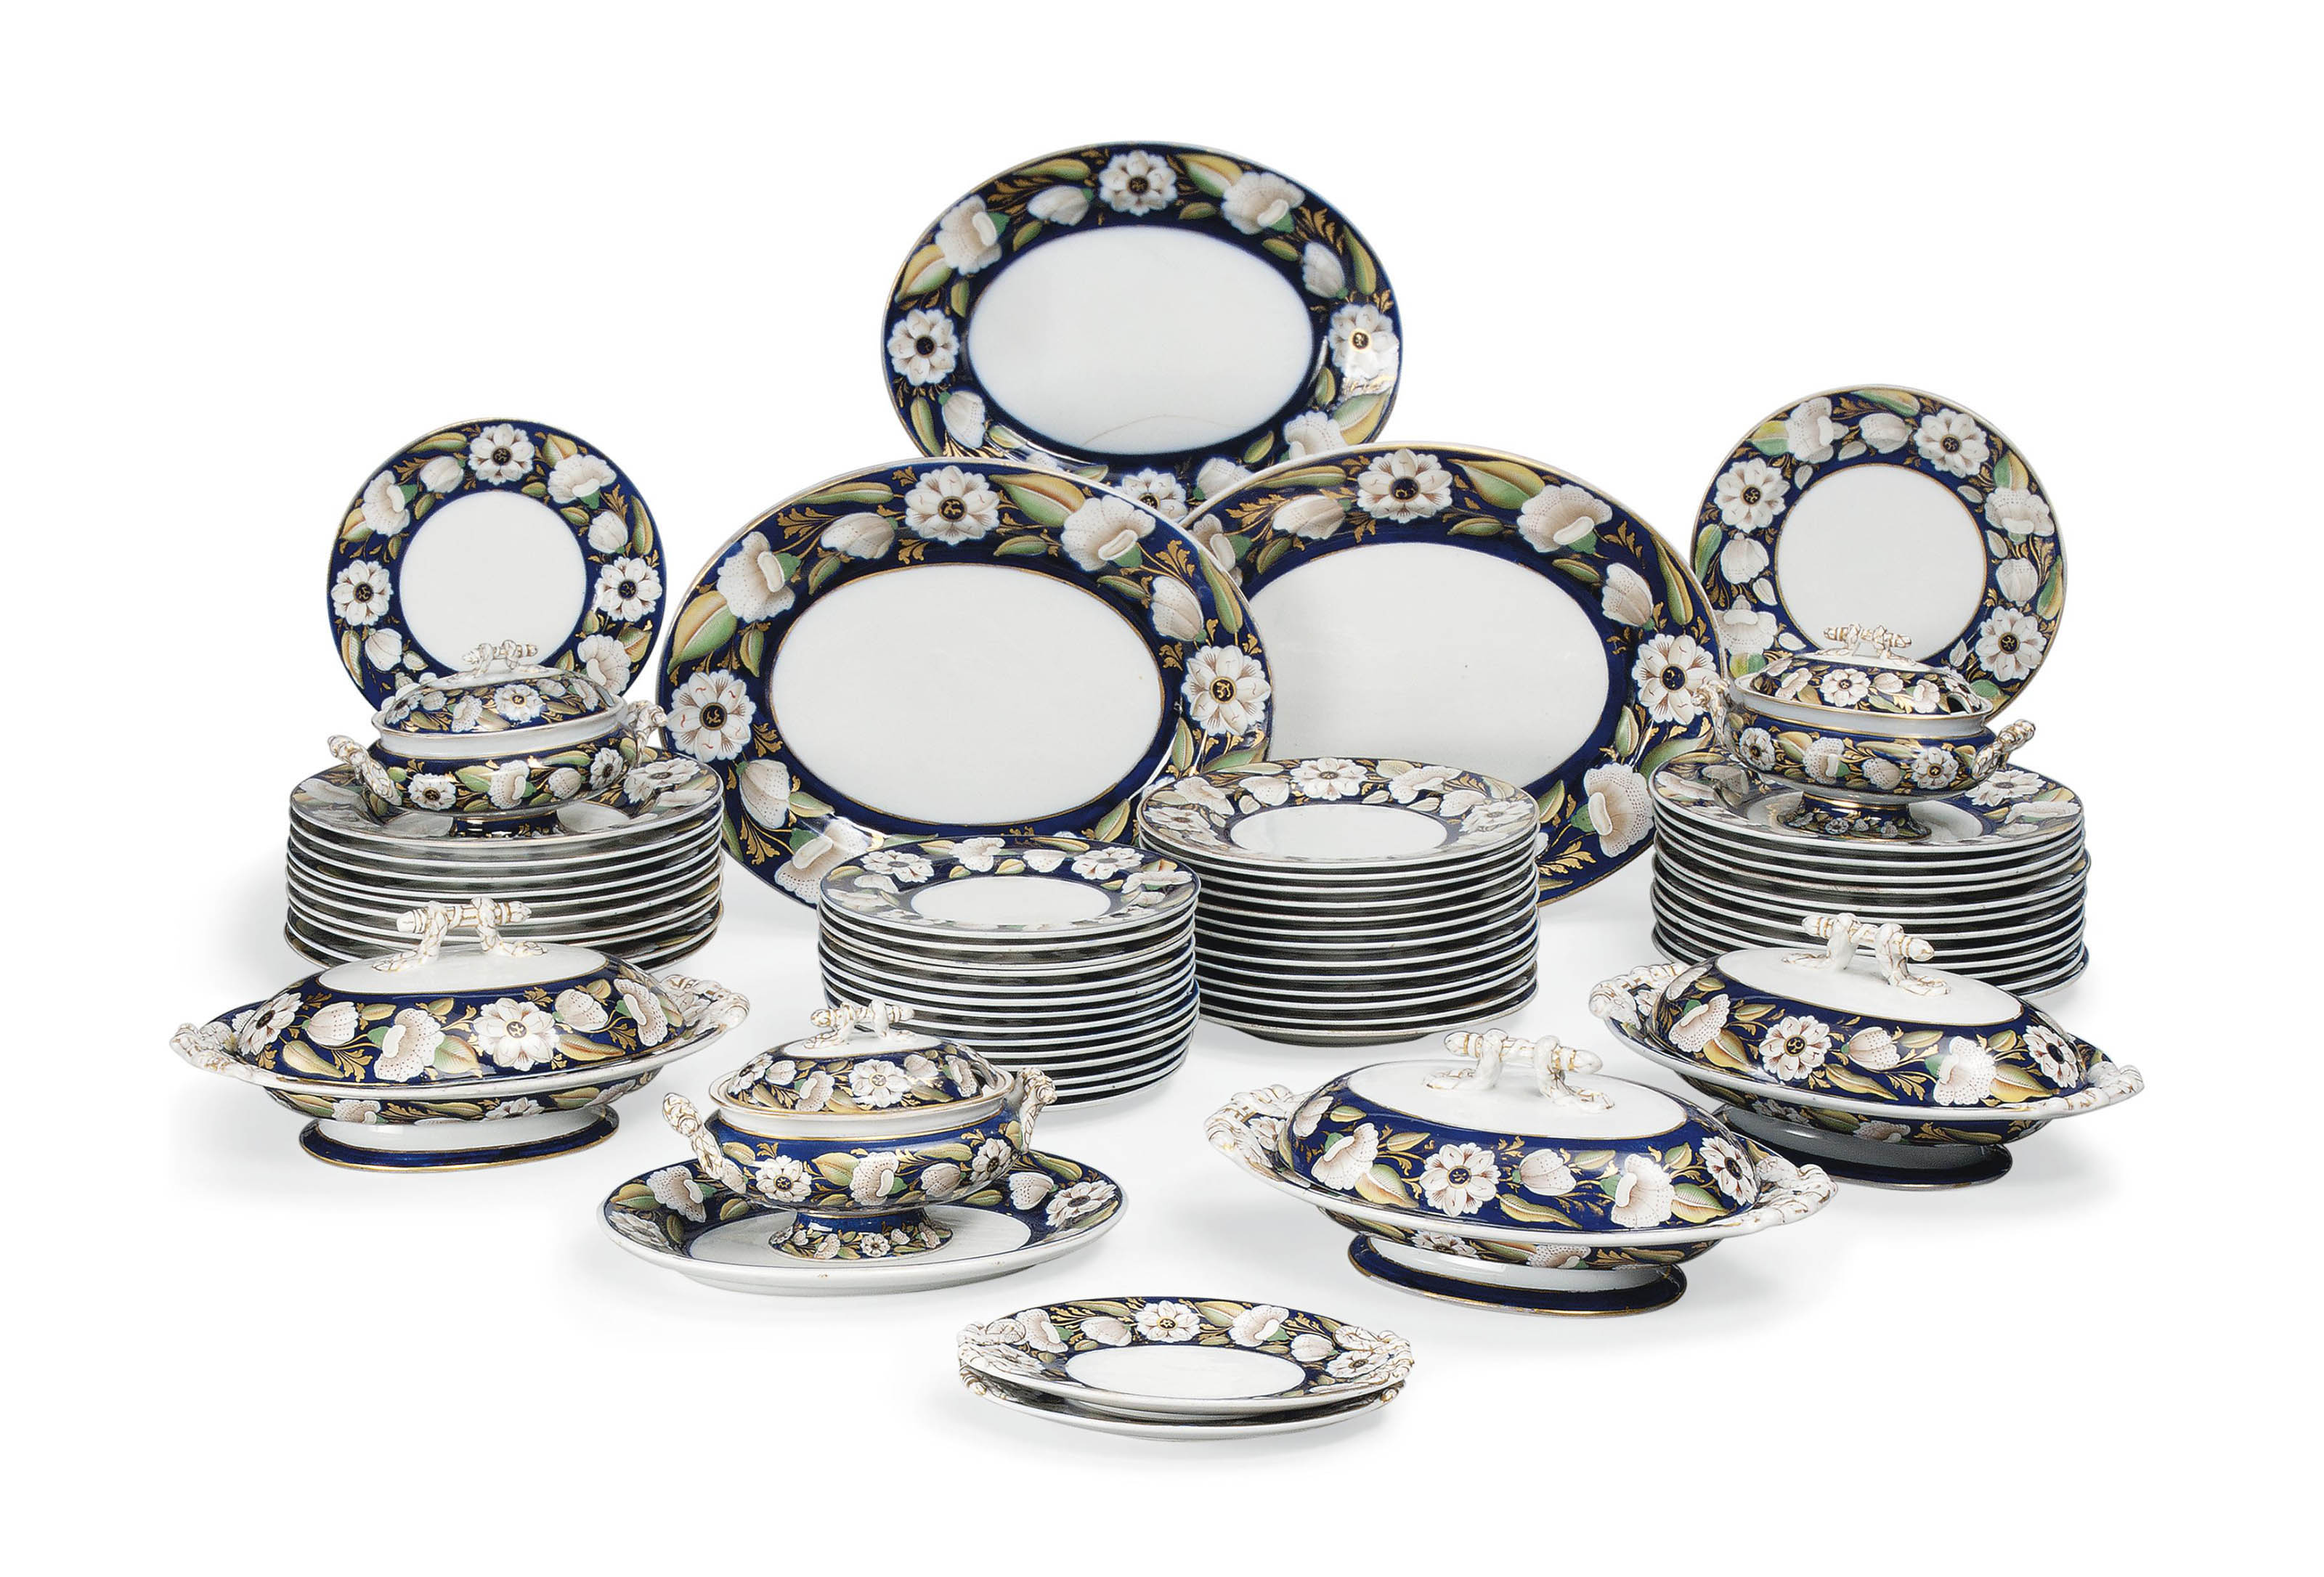 AN ASHWORTHS REAL IRONSTONE CHINA PART DINNER-SERVICE